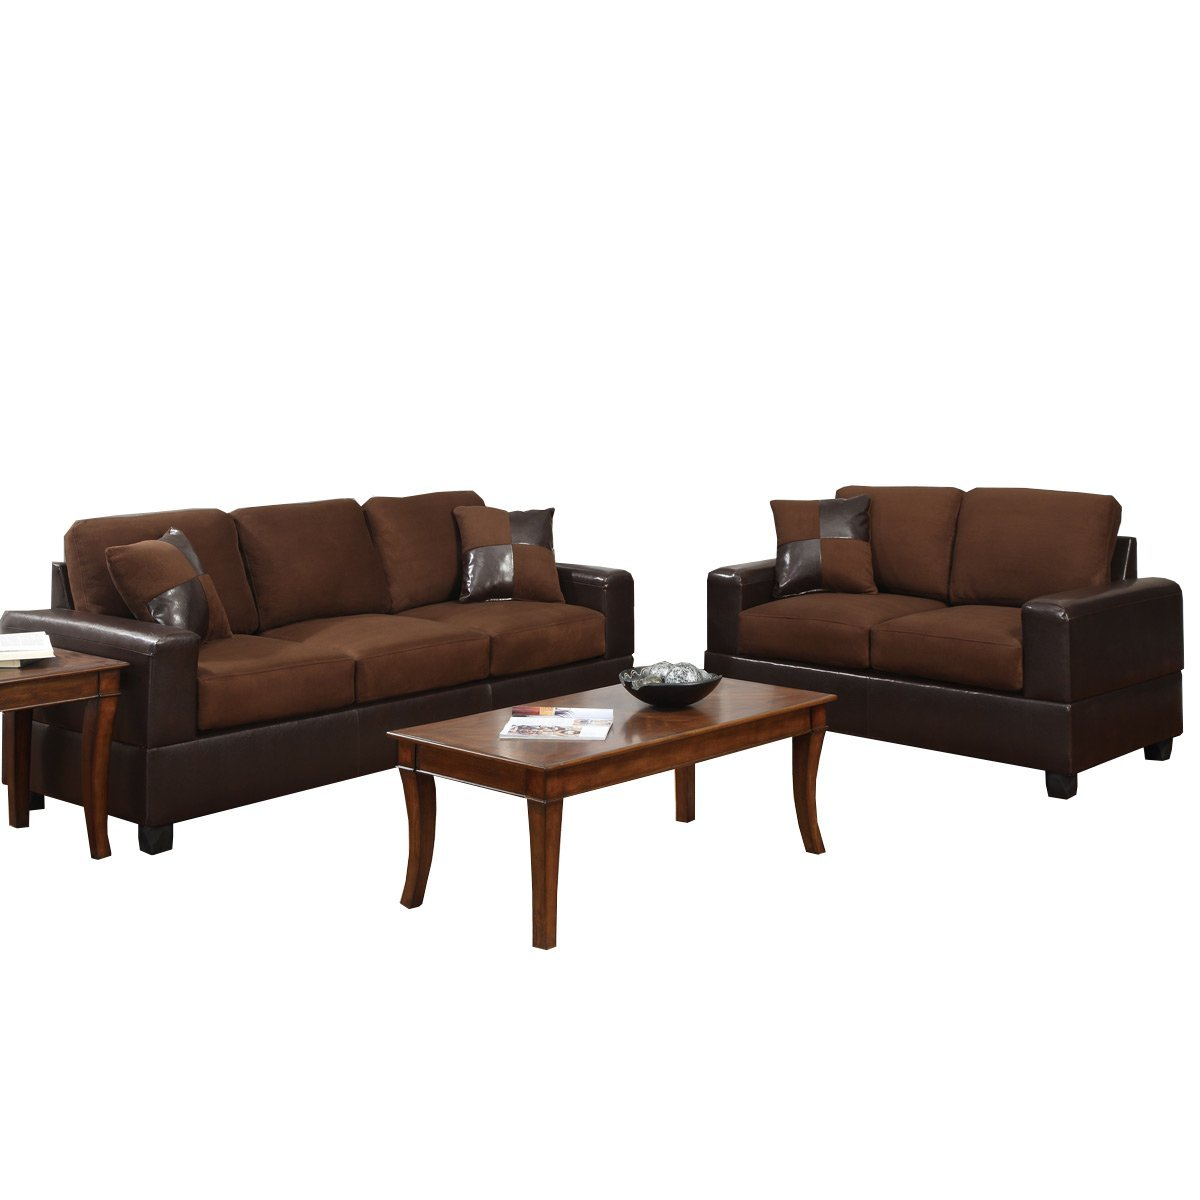 almafi 2 piece leather sofa set and love seat best deals 2018 sofas loveseats review  4 you can buy